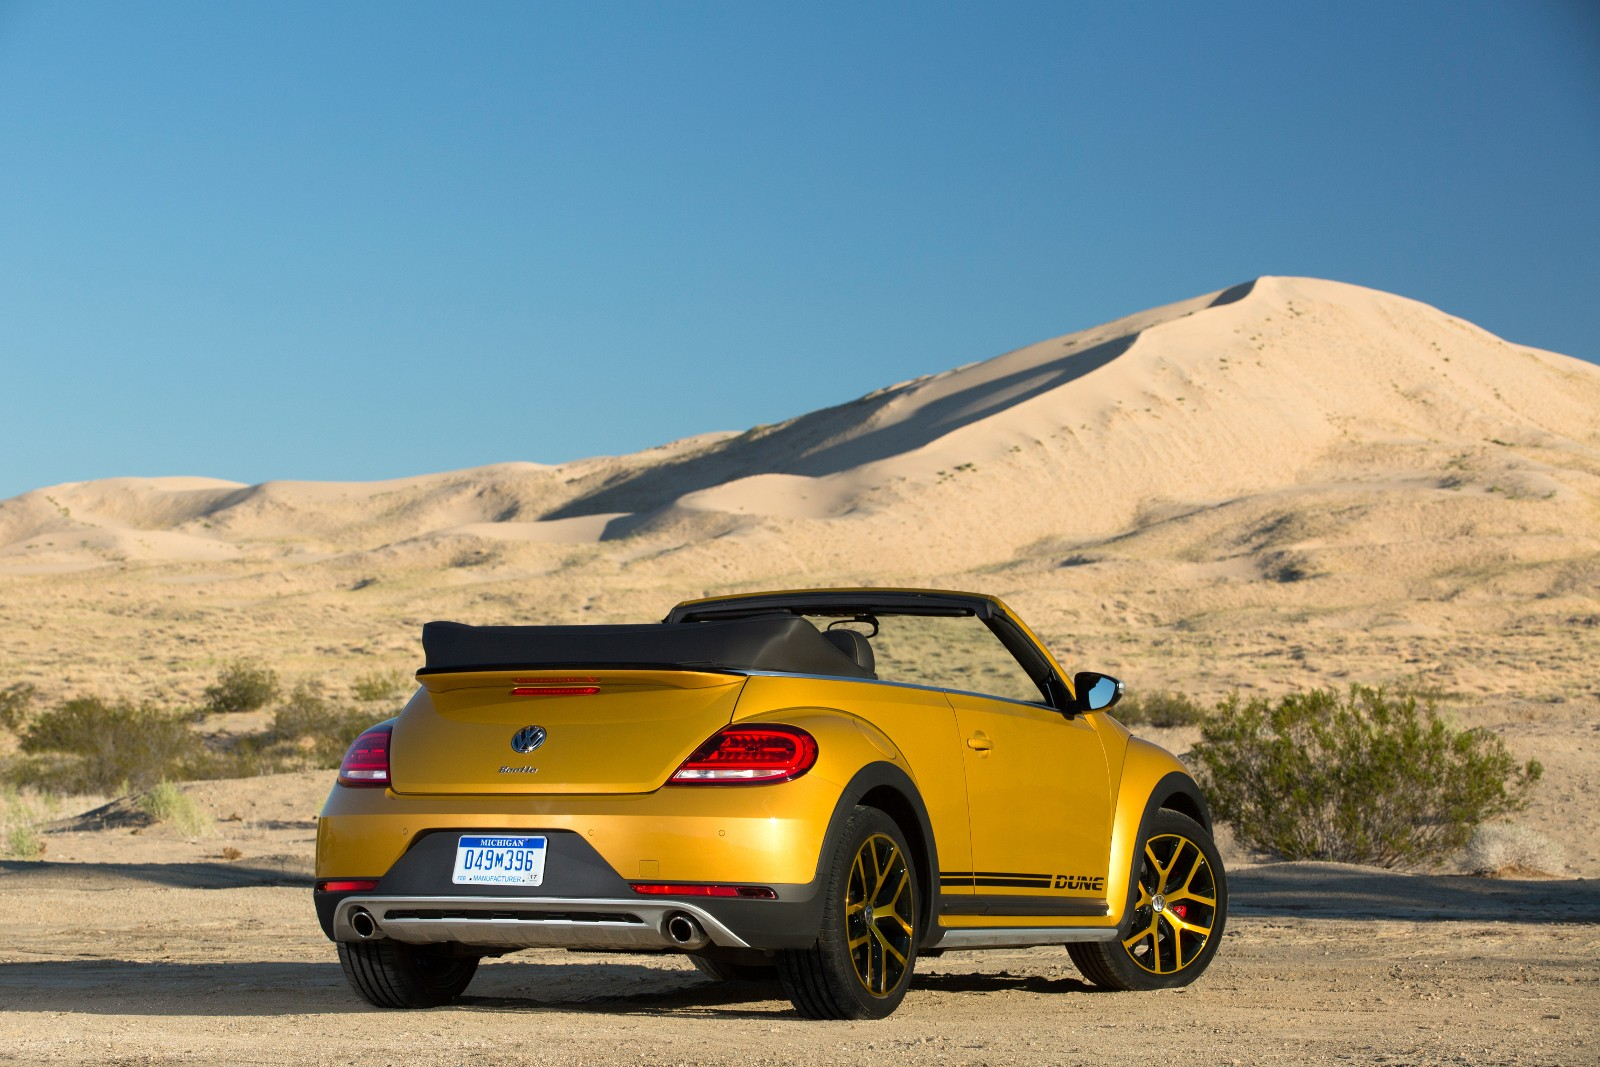 2017 Volkswagen Beetle Dune Revealed at LA Auto Show, Available as a Cabriolet - autoevolution